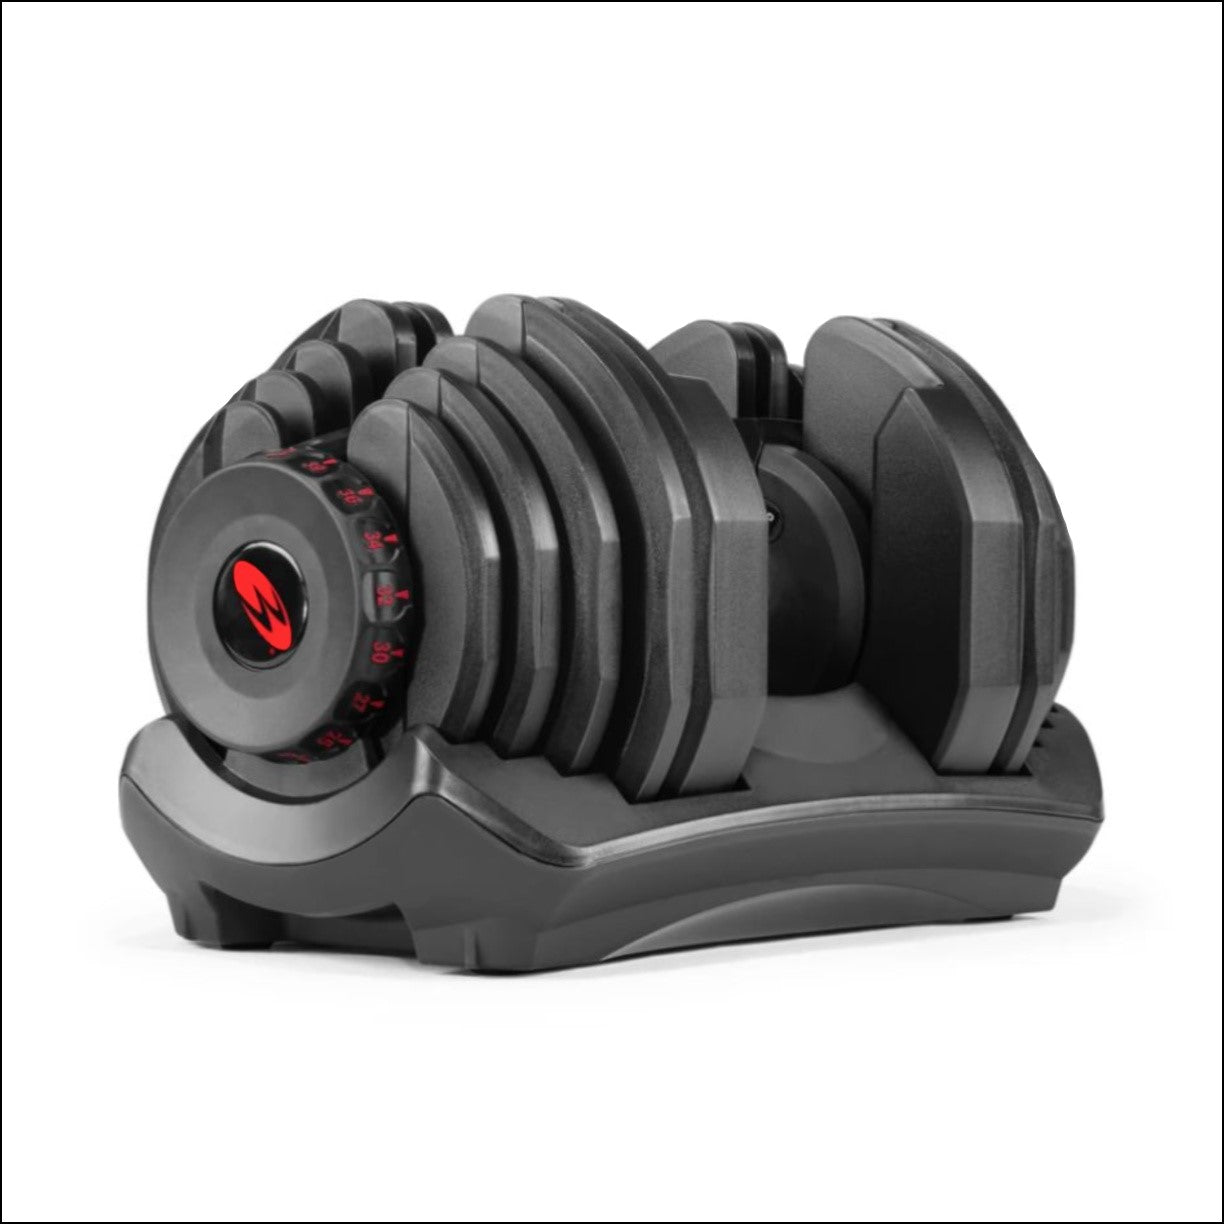 Home gym equipment Australia  BOWFLEX 1090i Adjustable Dumbbell These adjustable dumbbells have weights that adjust